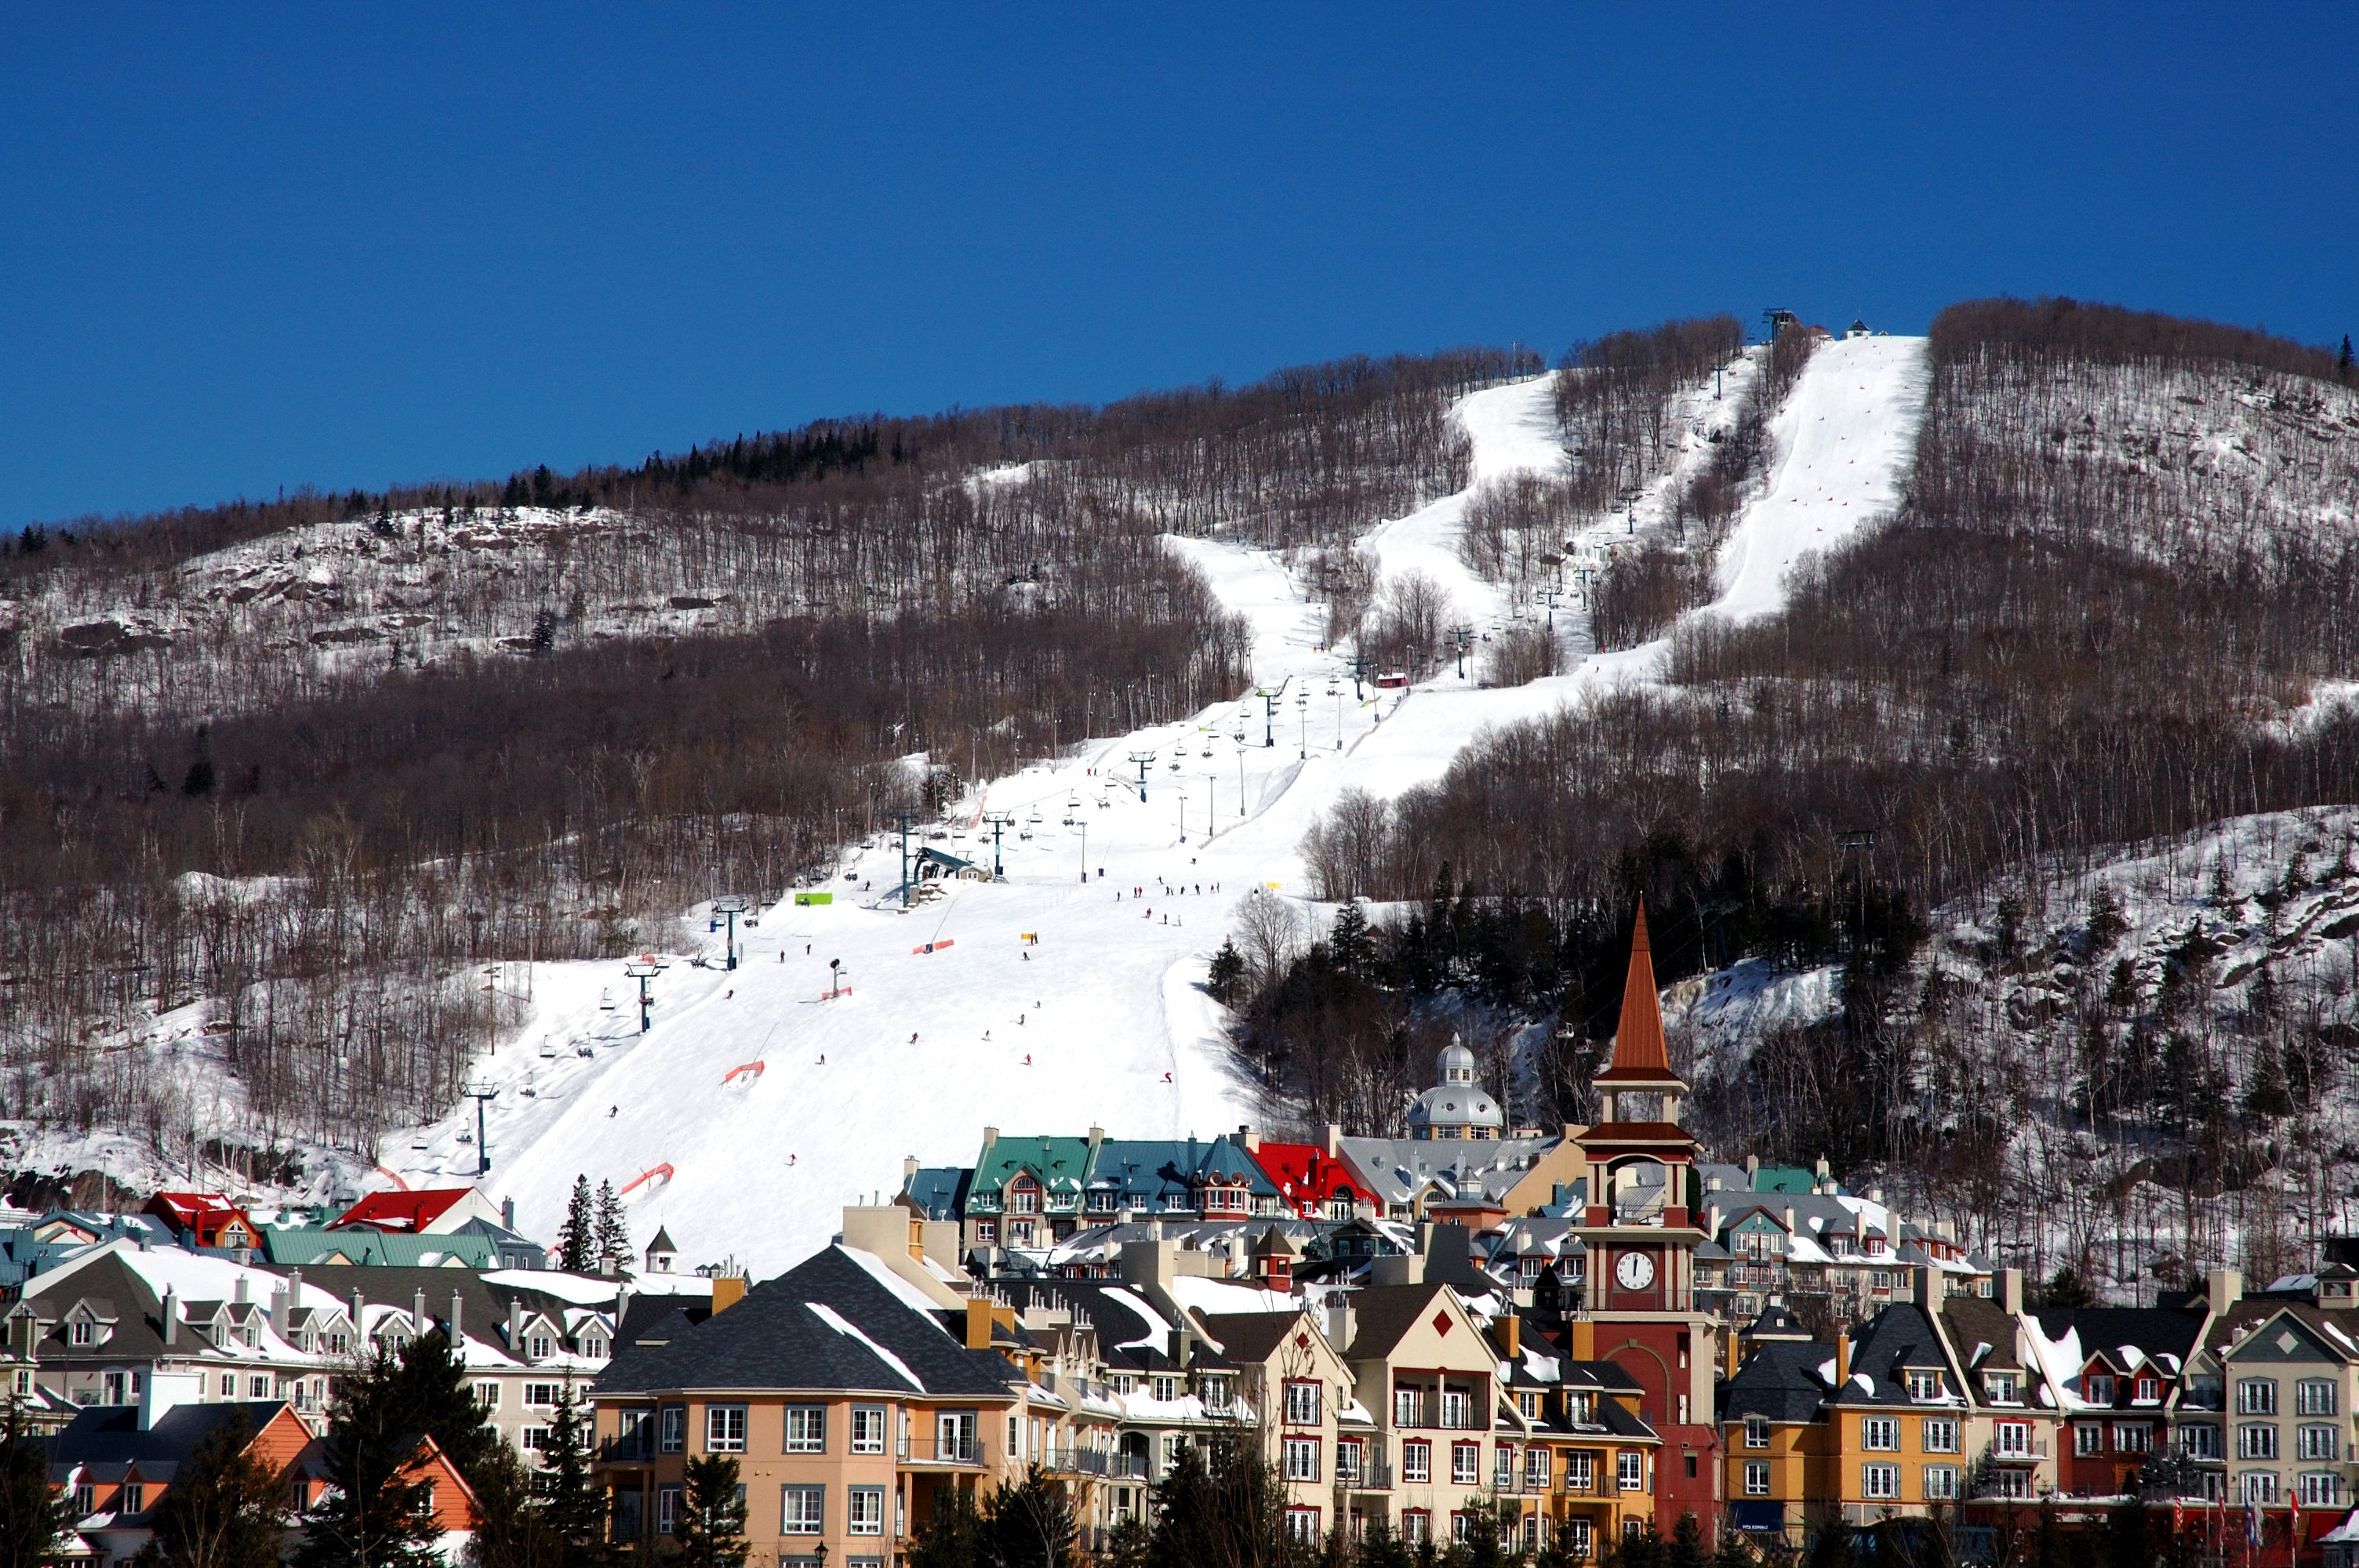 Panoramic view of a ski hill with village below in Mont-Tremblant, Quebec, Canada